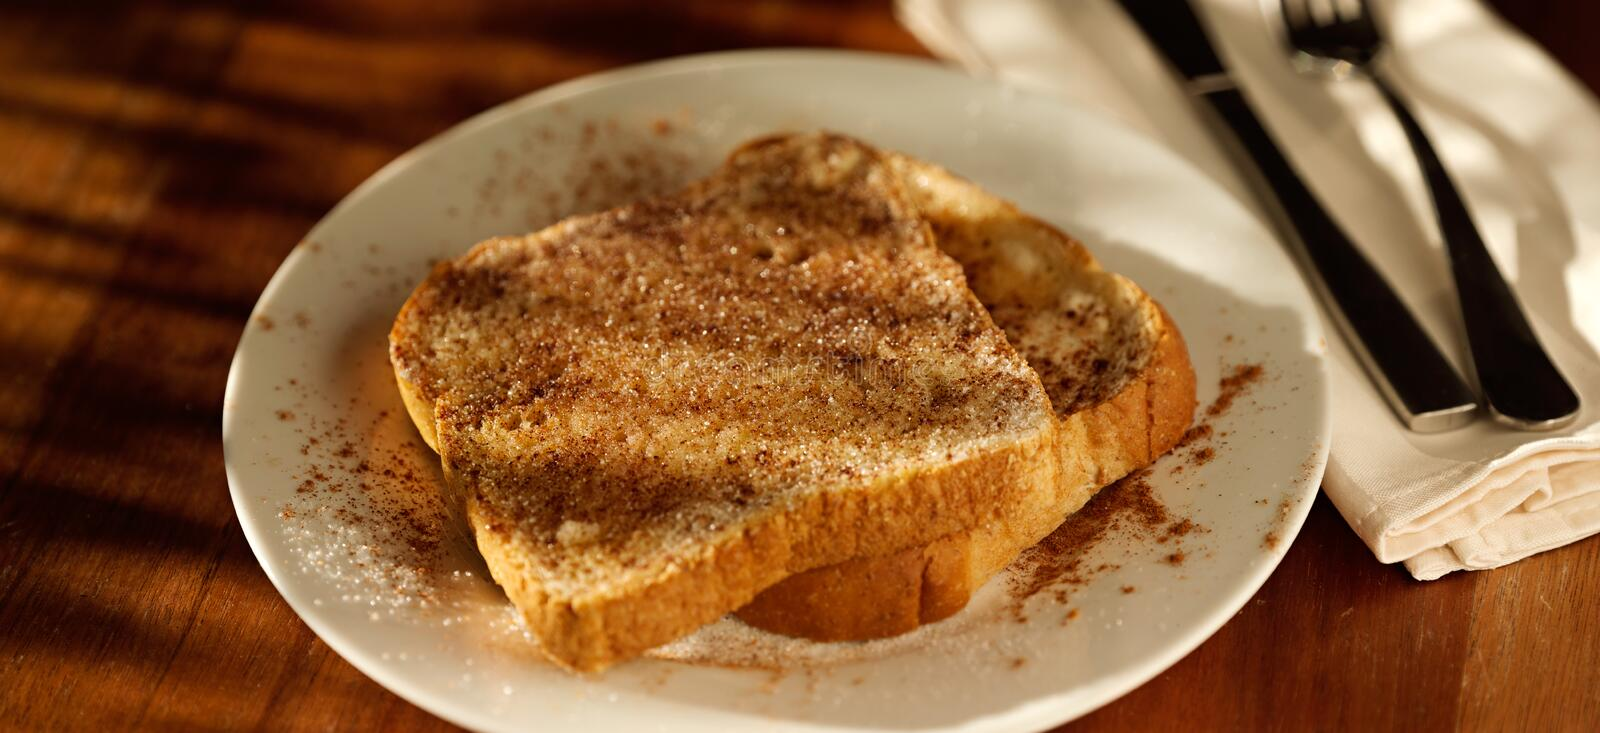 Download Cinnamon Sugar Toast Shot With Selective Focus. Stock Photo - Image: 22798568